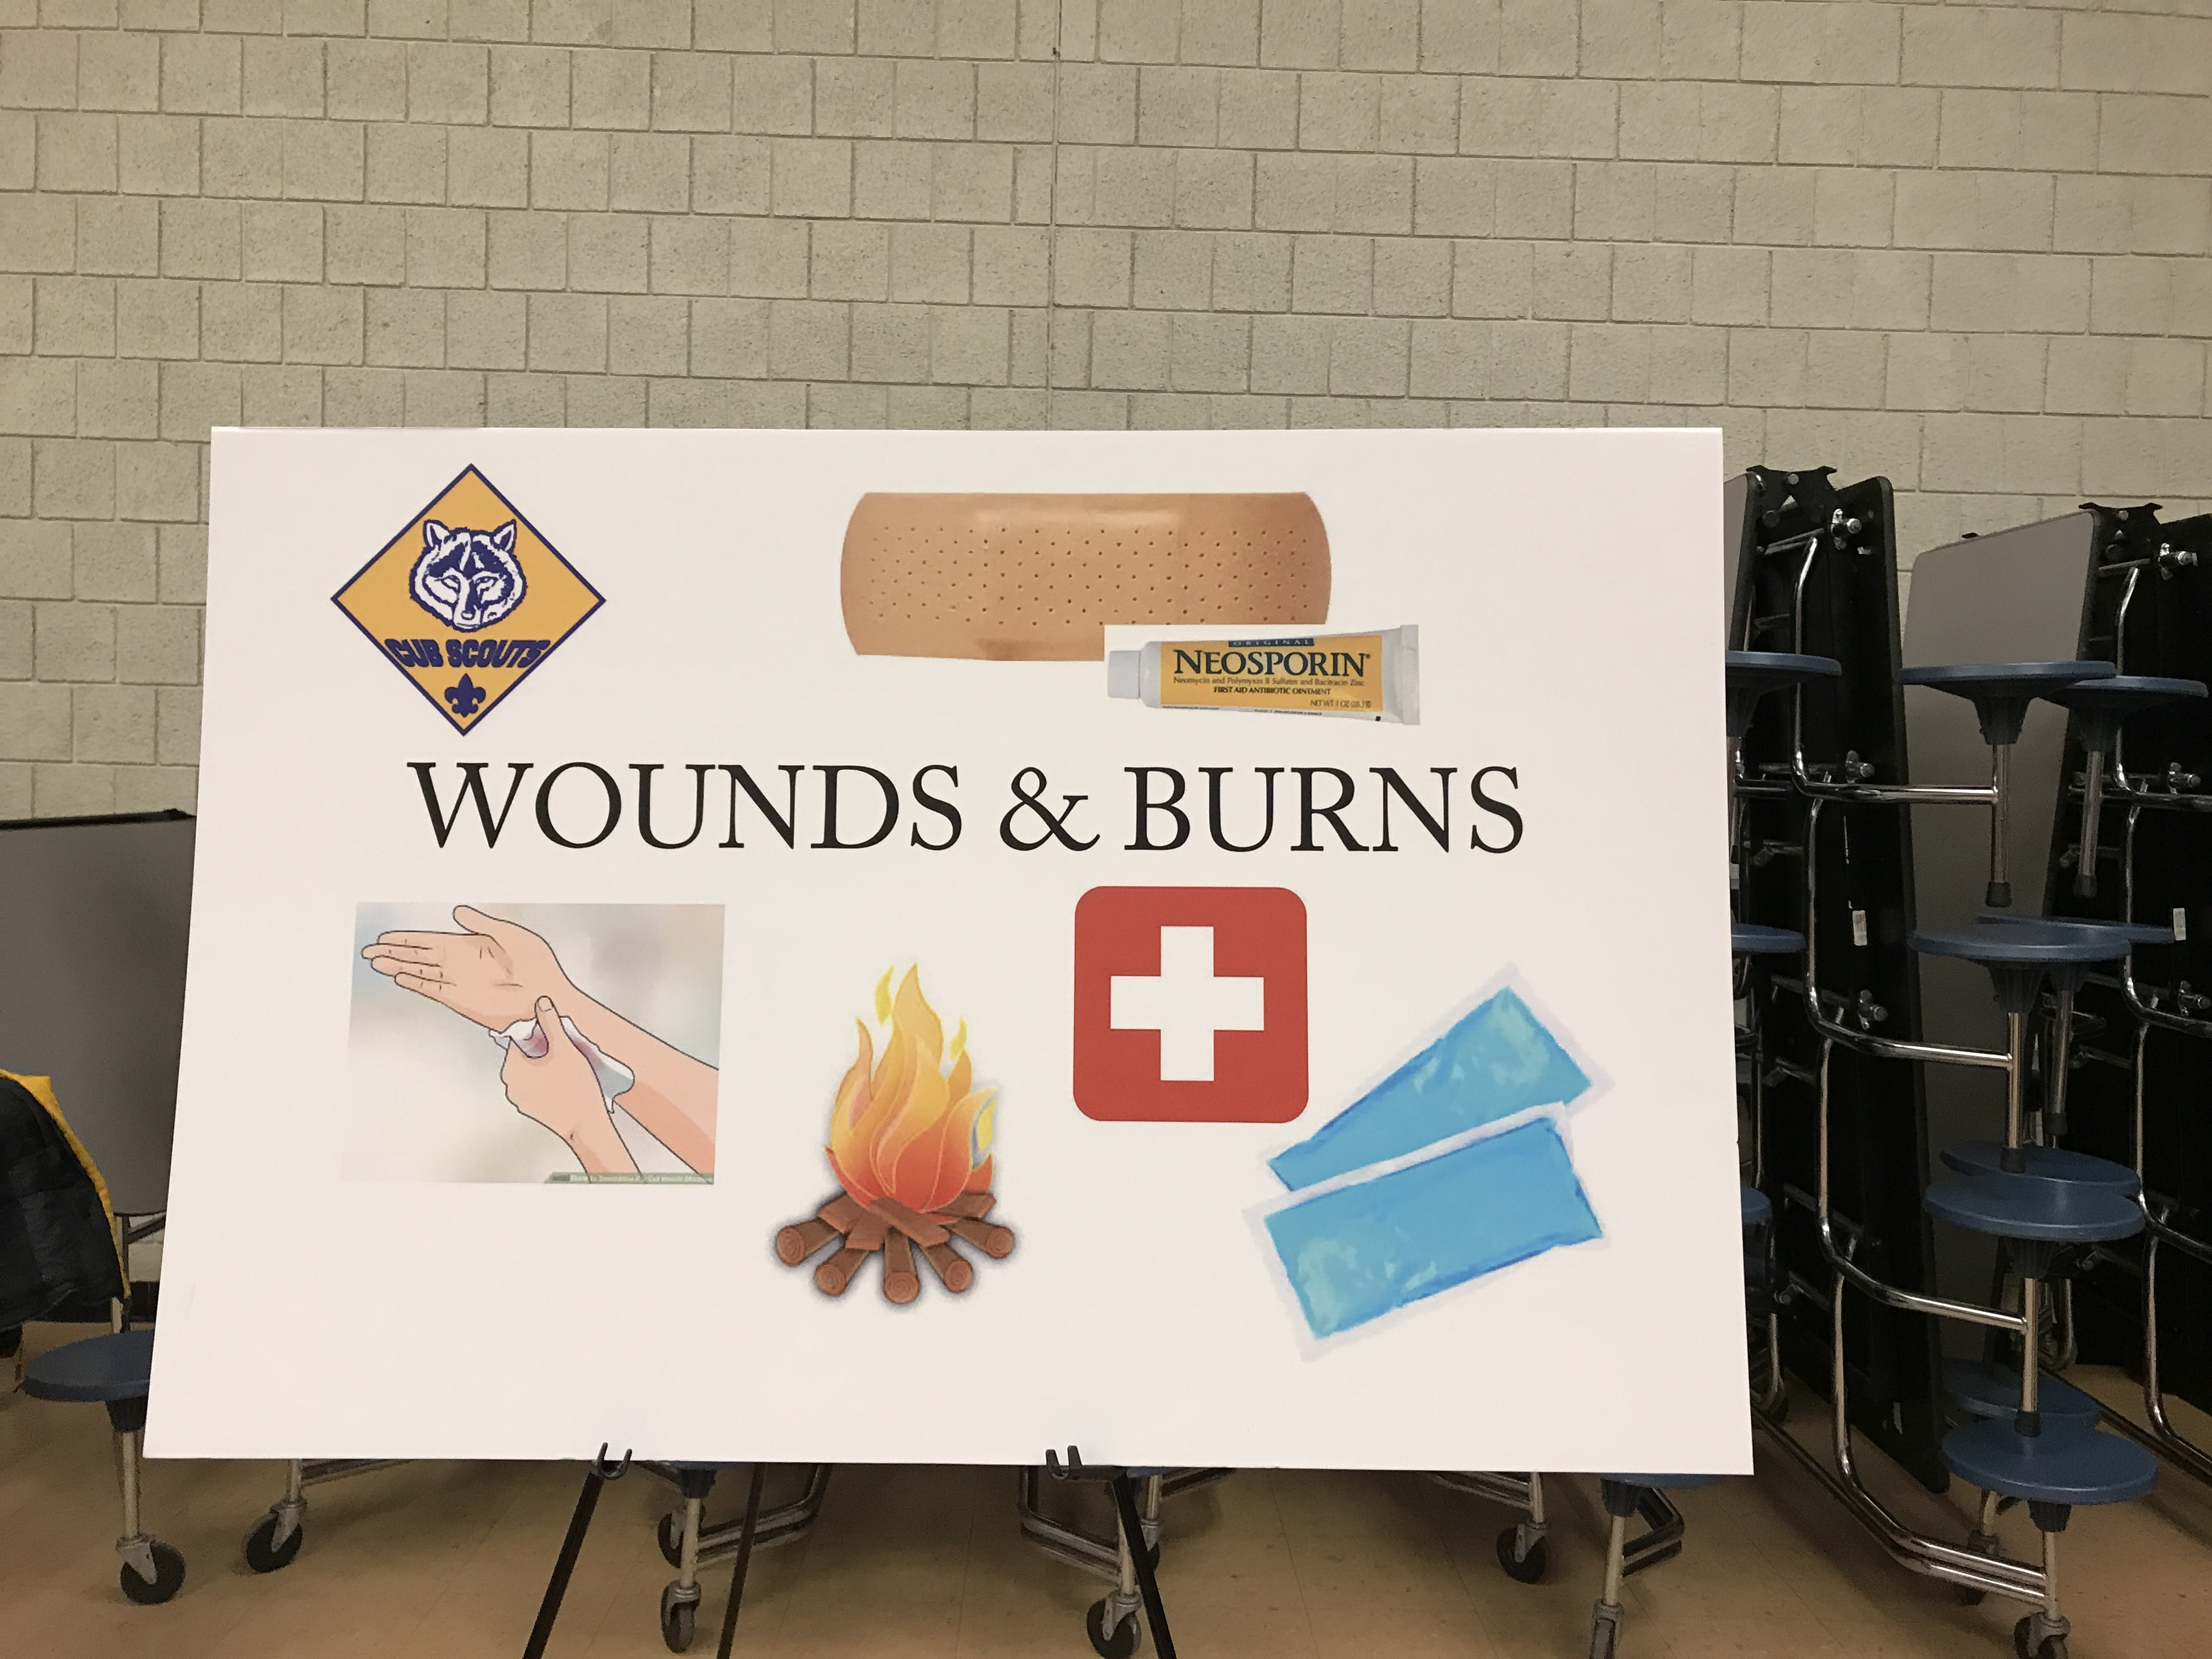 Cub Scout Nwh First Responder Pack Meeting Was A Huge